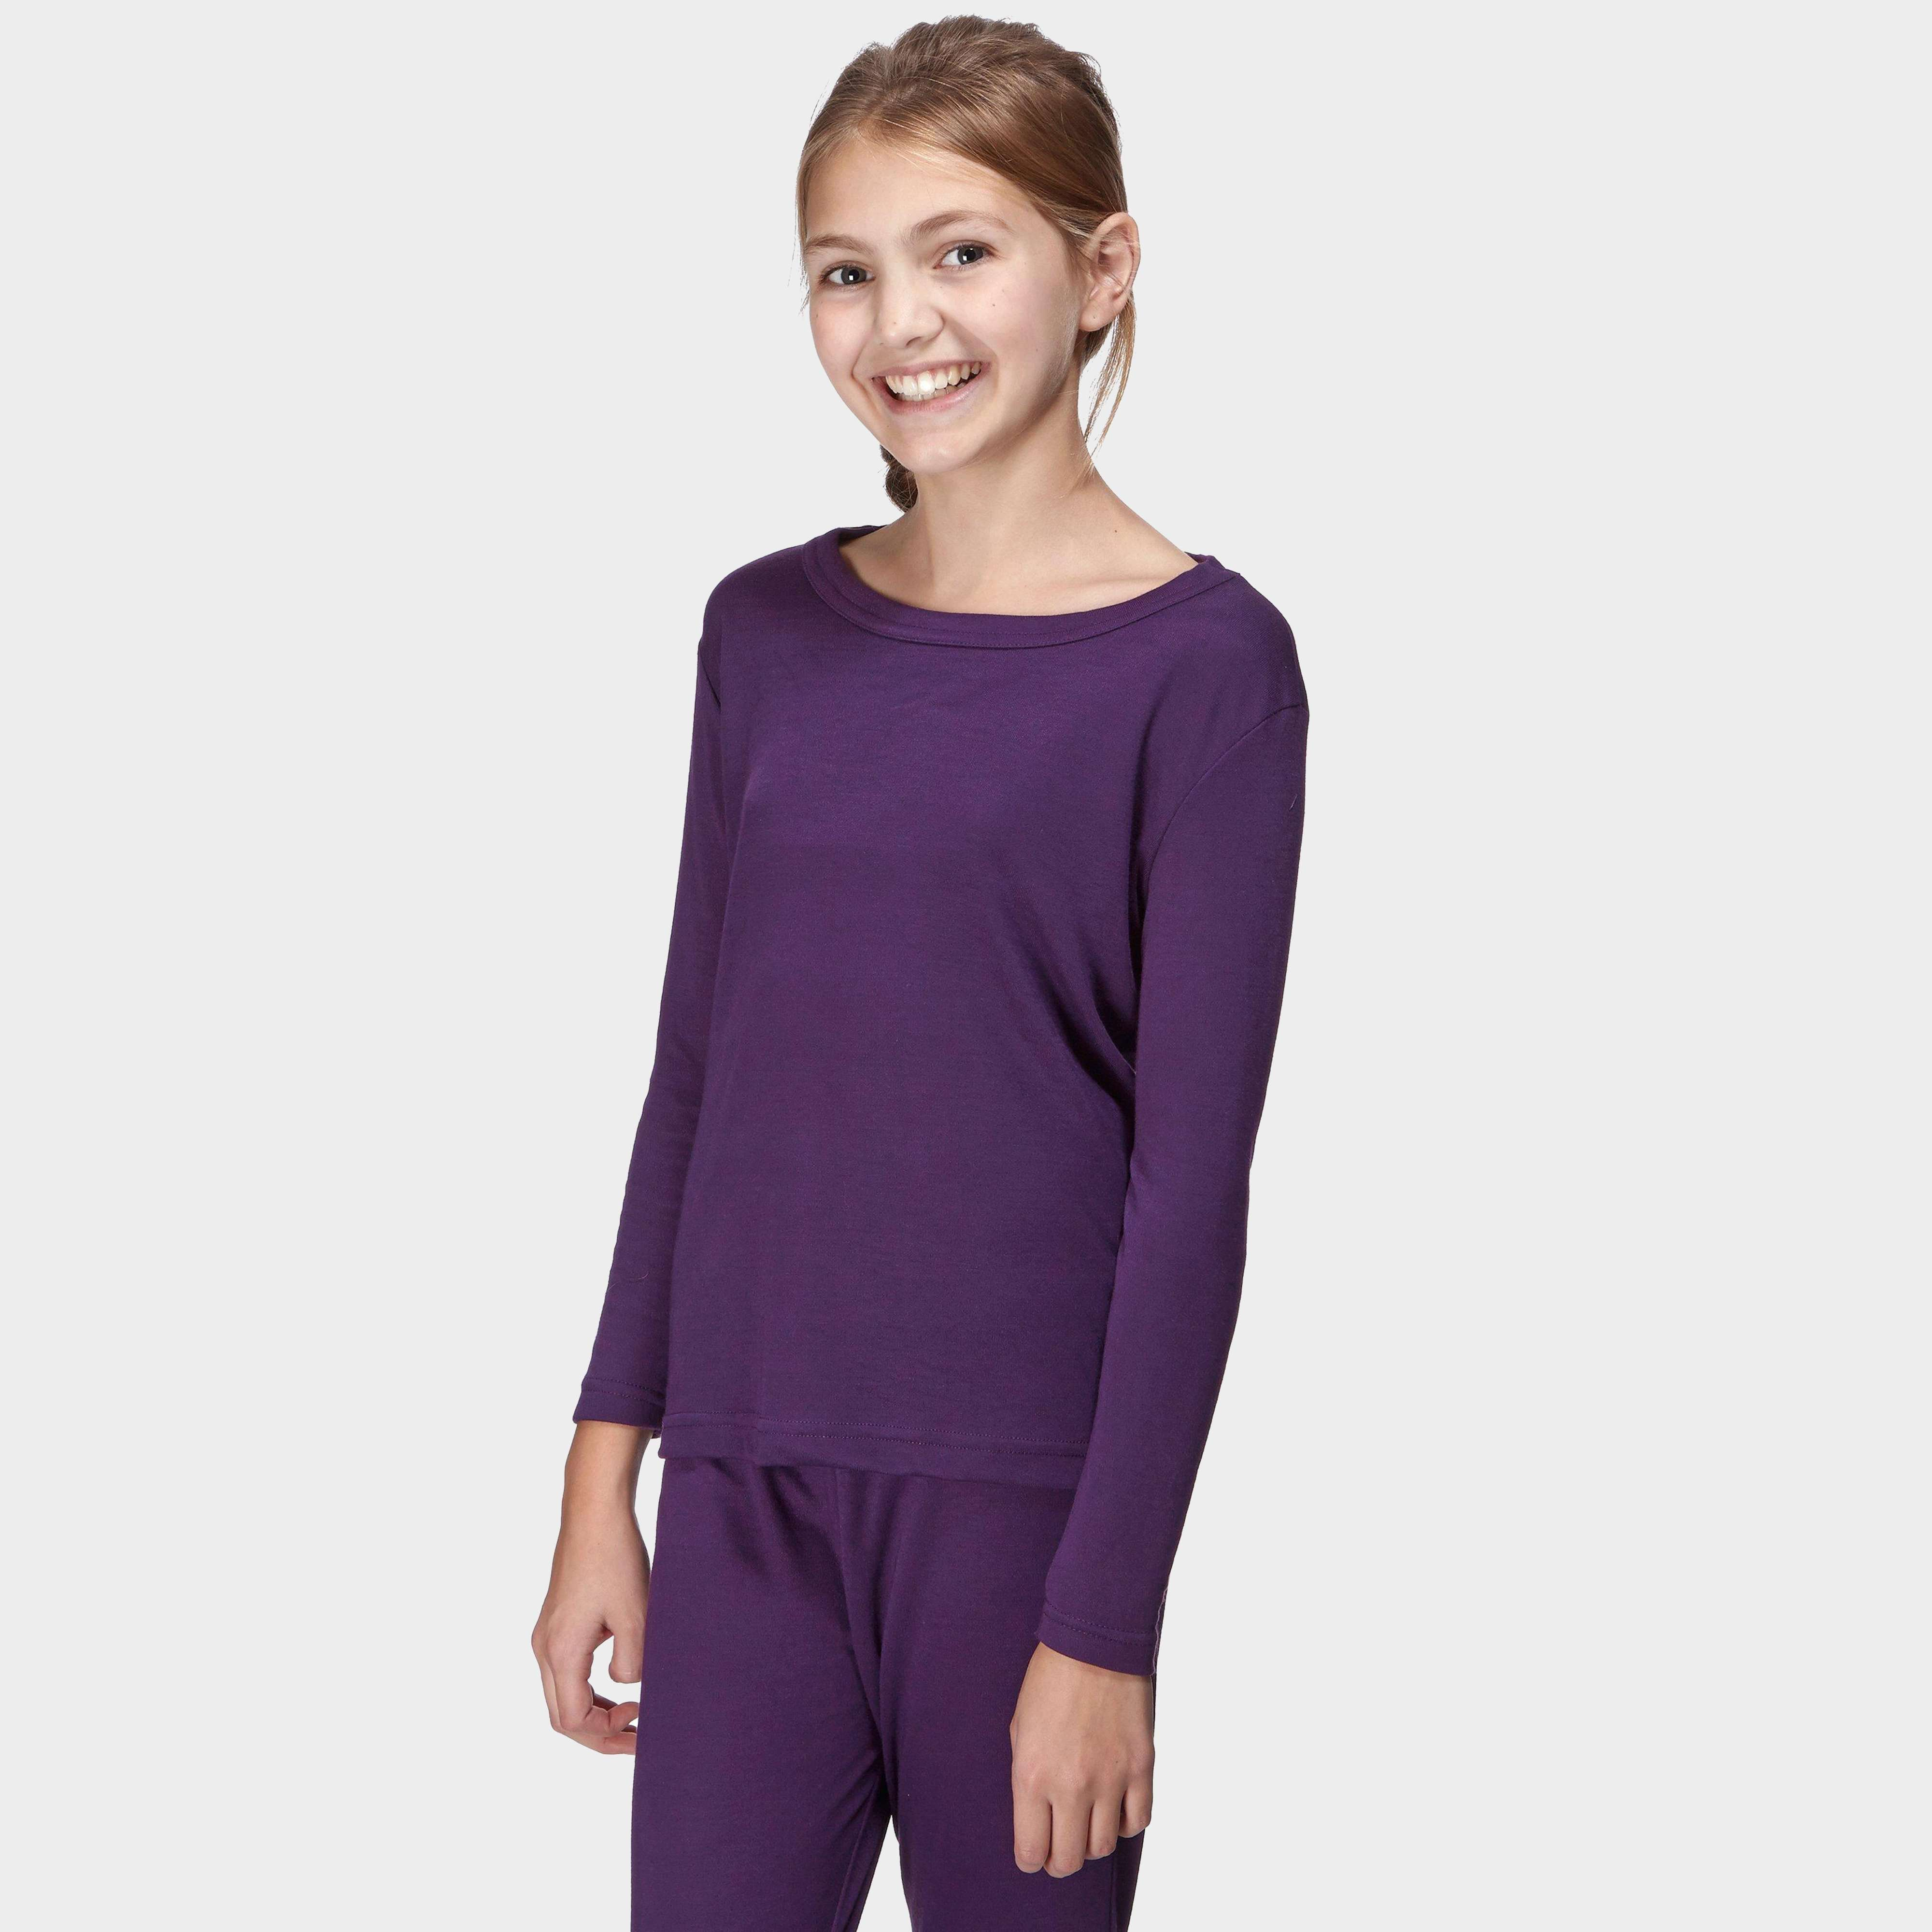 PETER STORM Girls' Long Sleeve Thermal Crew Baselayer Top